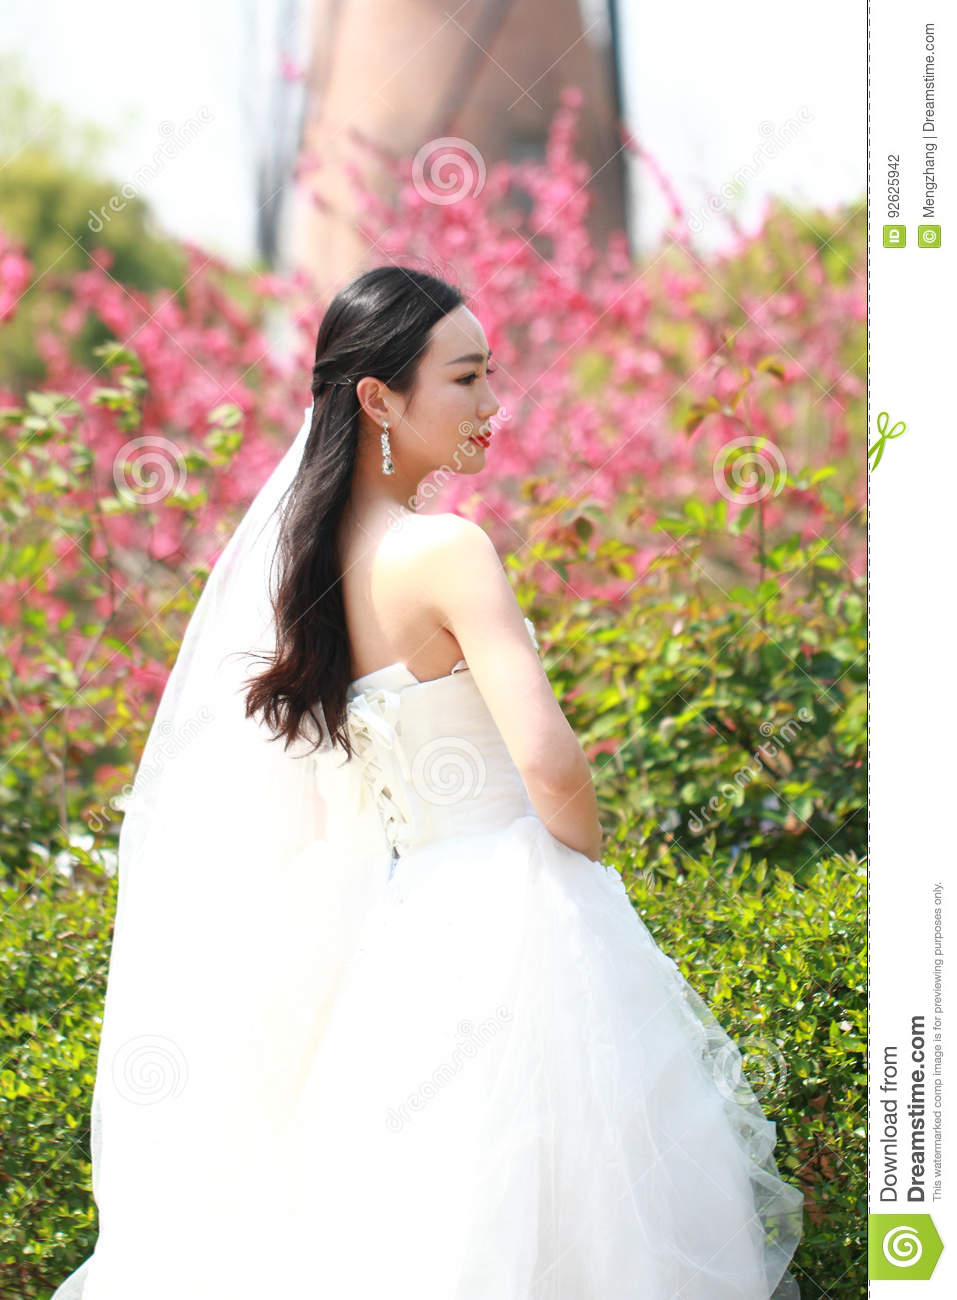 Girl Bride In Wedding Dress With Elegant Hairstyle With White